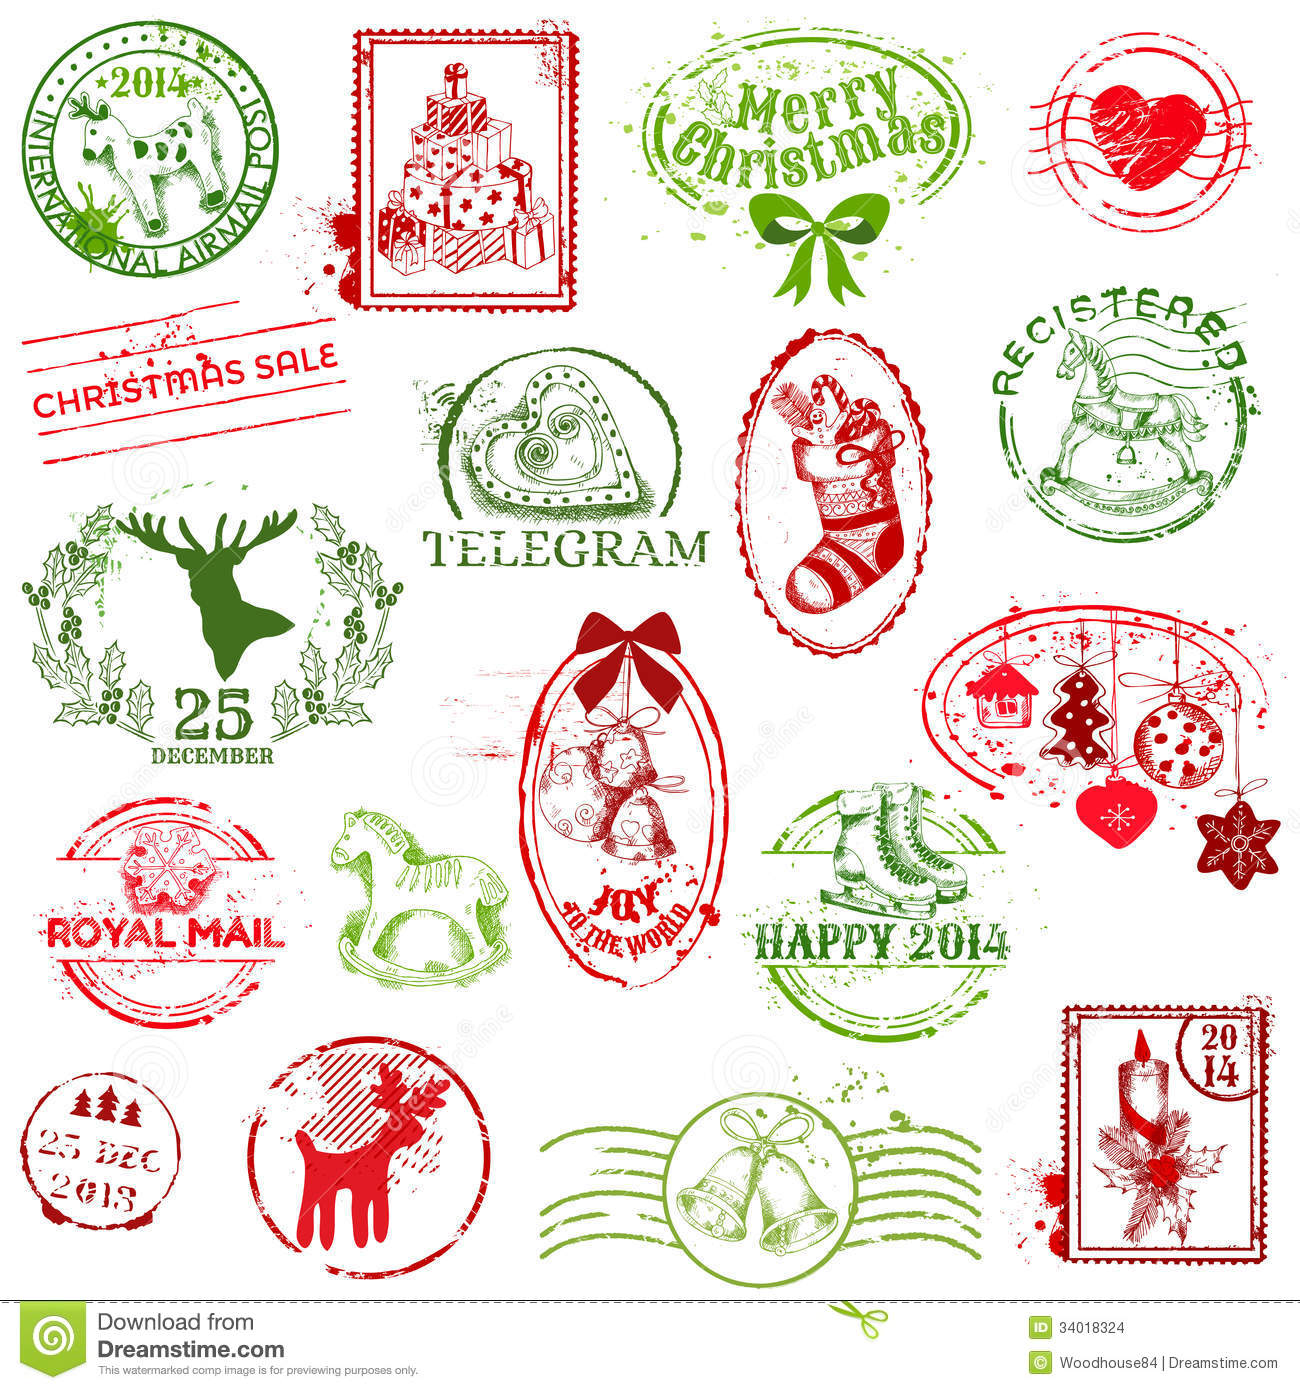 christmas stamp collection - Christmas Stamp